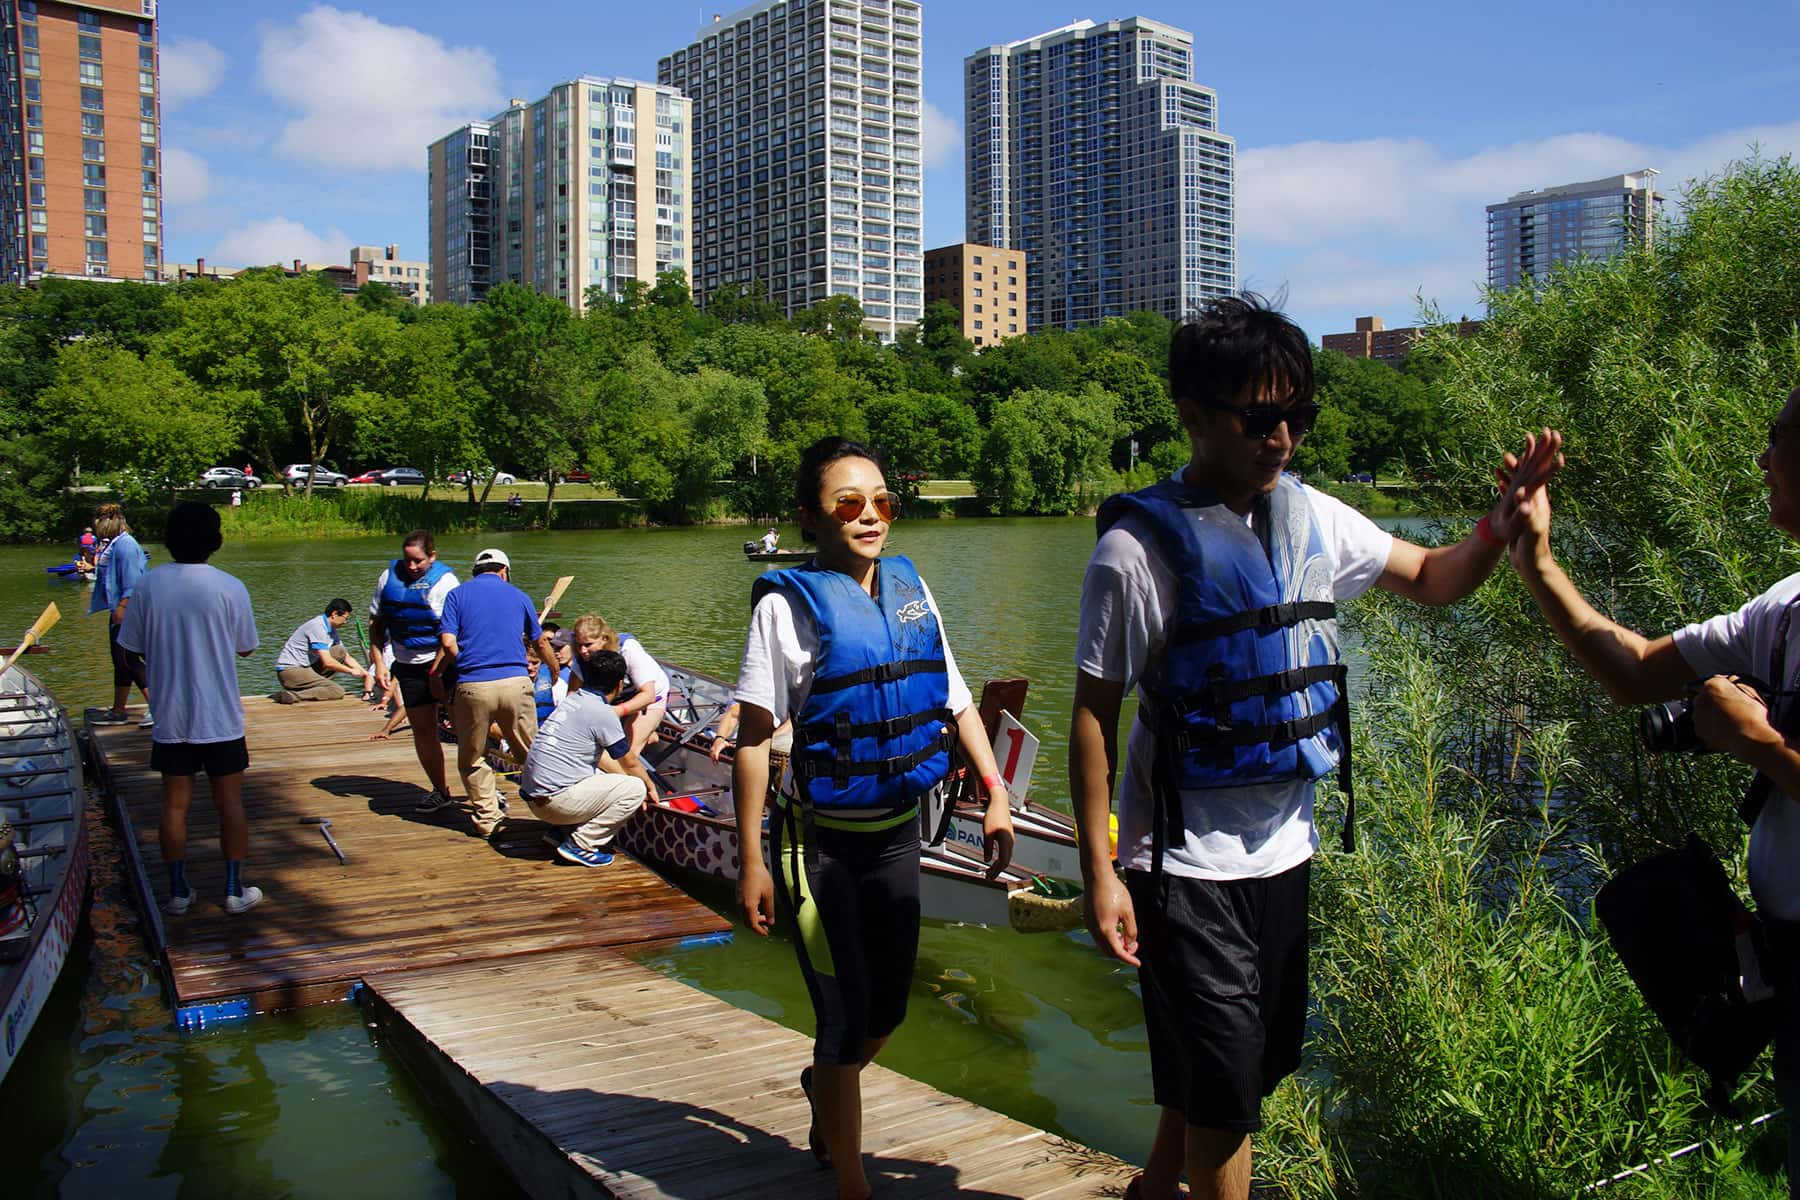 073016_DragonBoatRace_0516